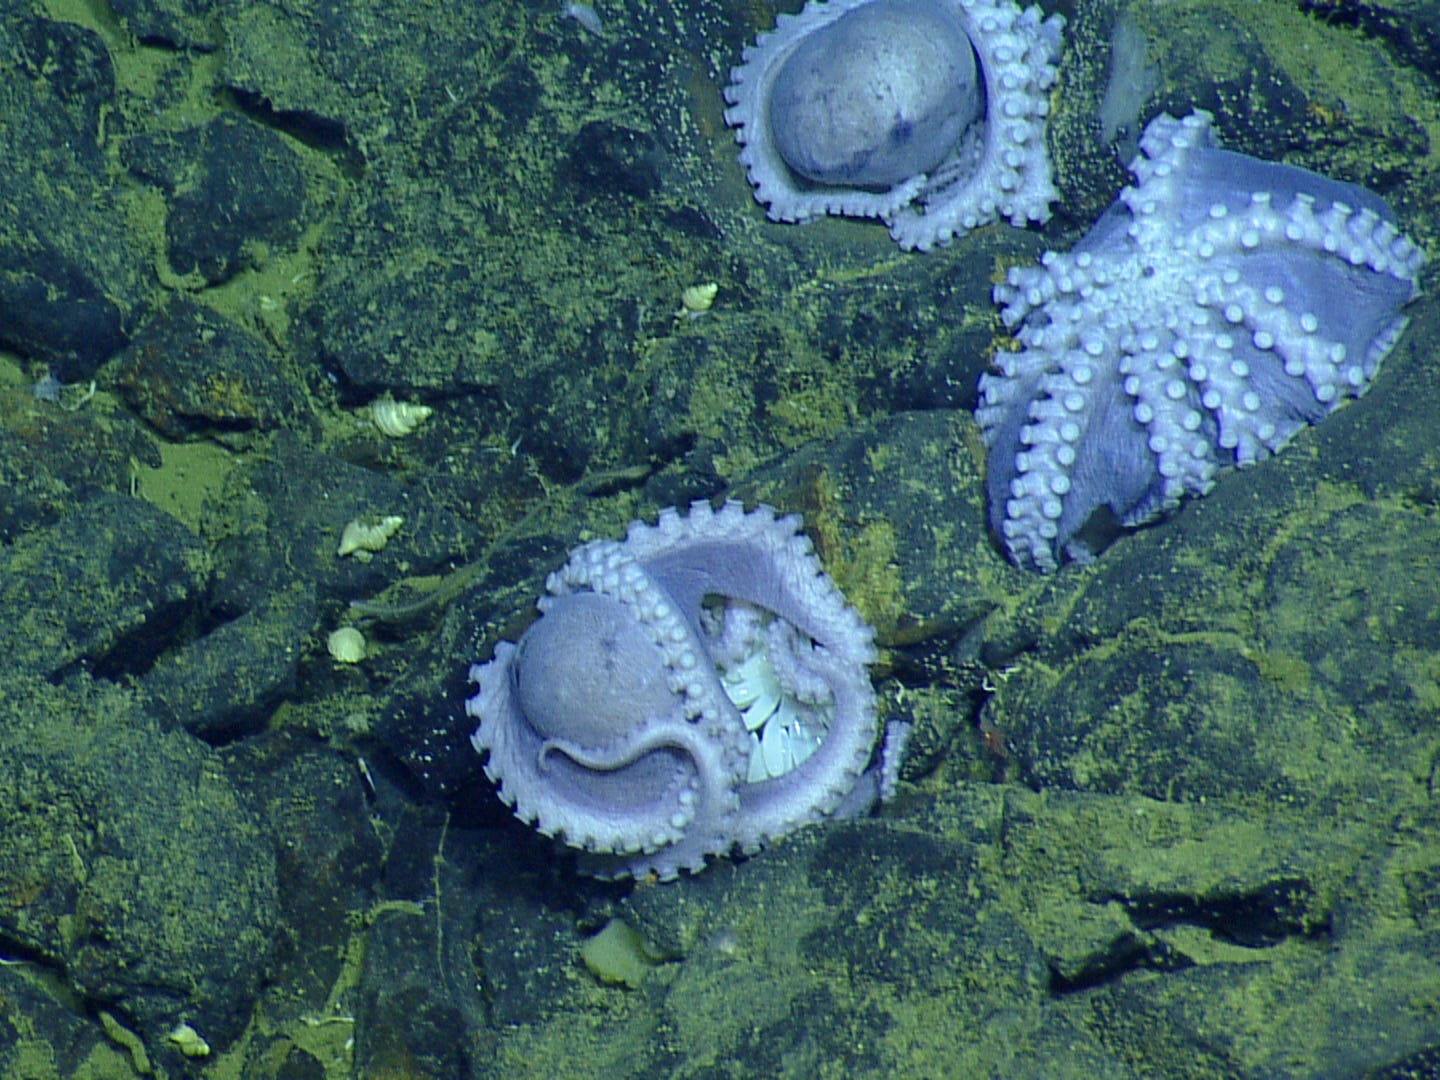 The aggregation of octopuses seen on the first dive consisted mostly of females brooding their eggs. The octopus nearest the center has her white eggs glistening among her arms.